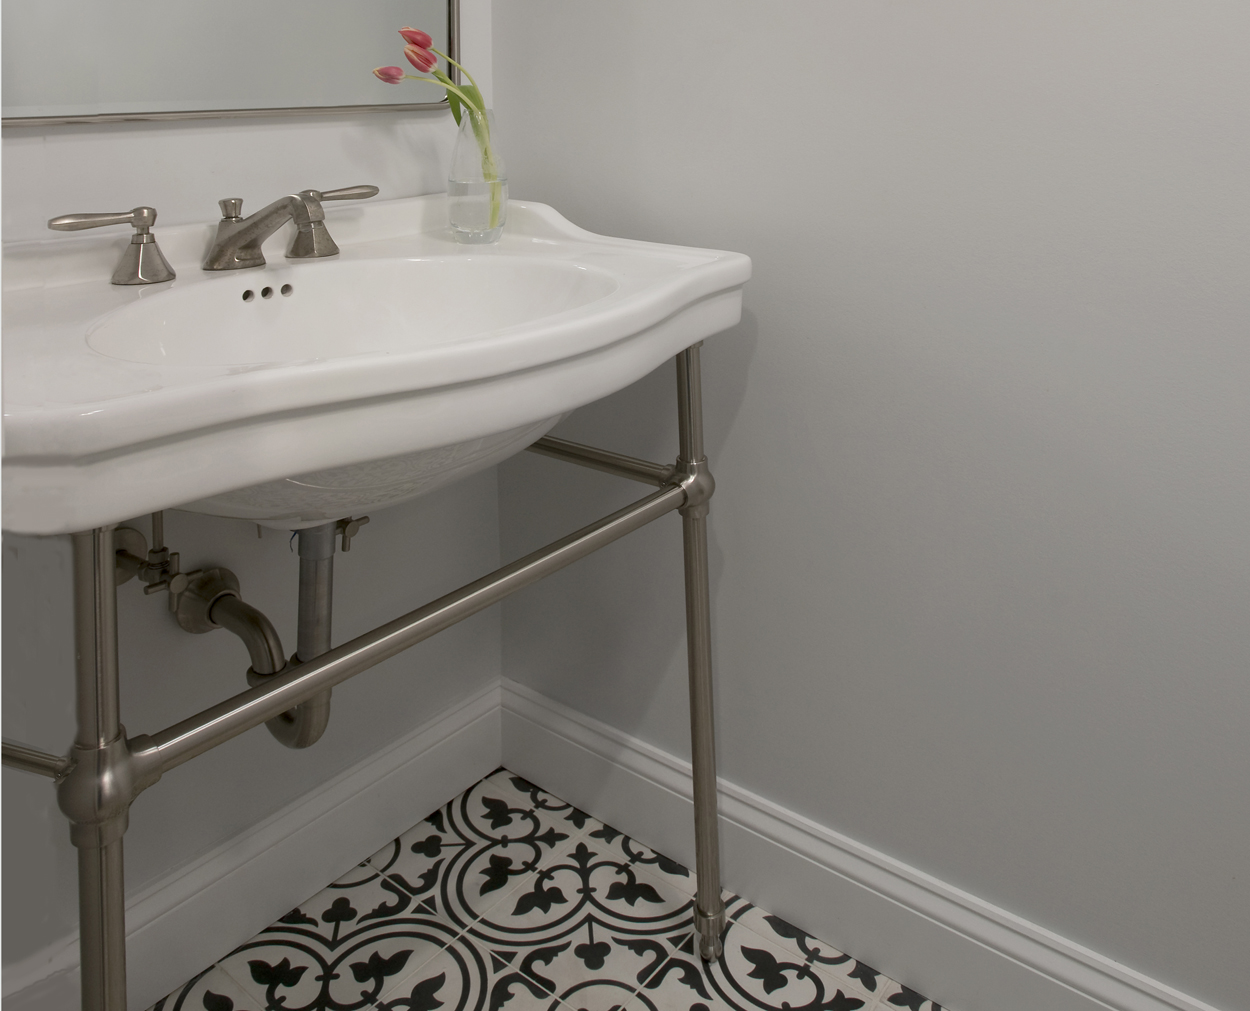 Powder room with concrete tile and freestanding vanity